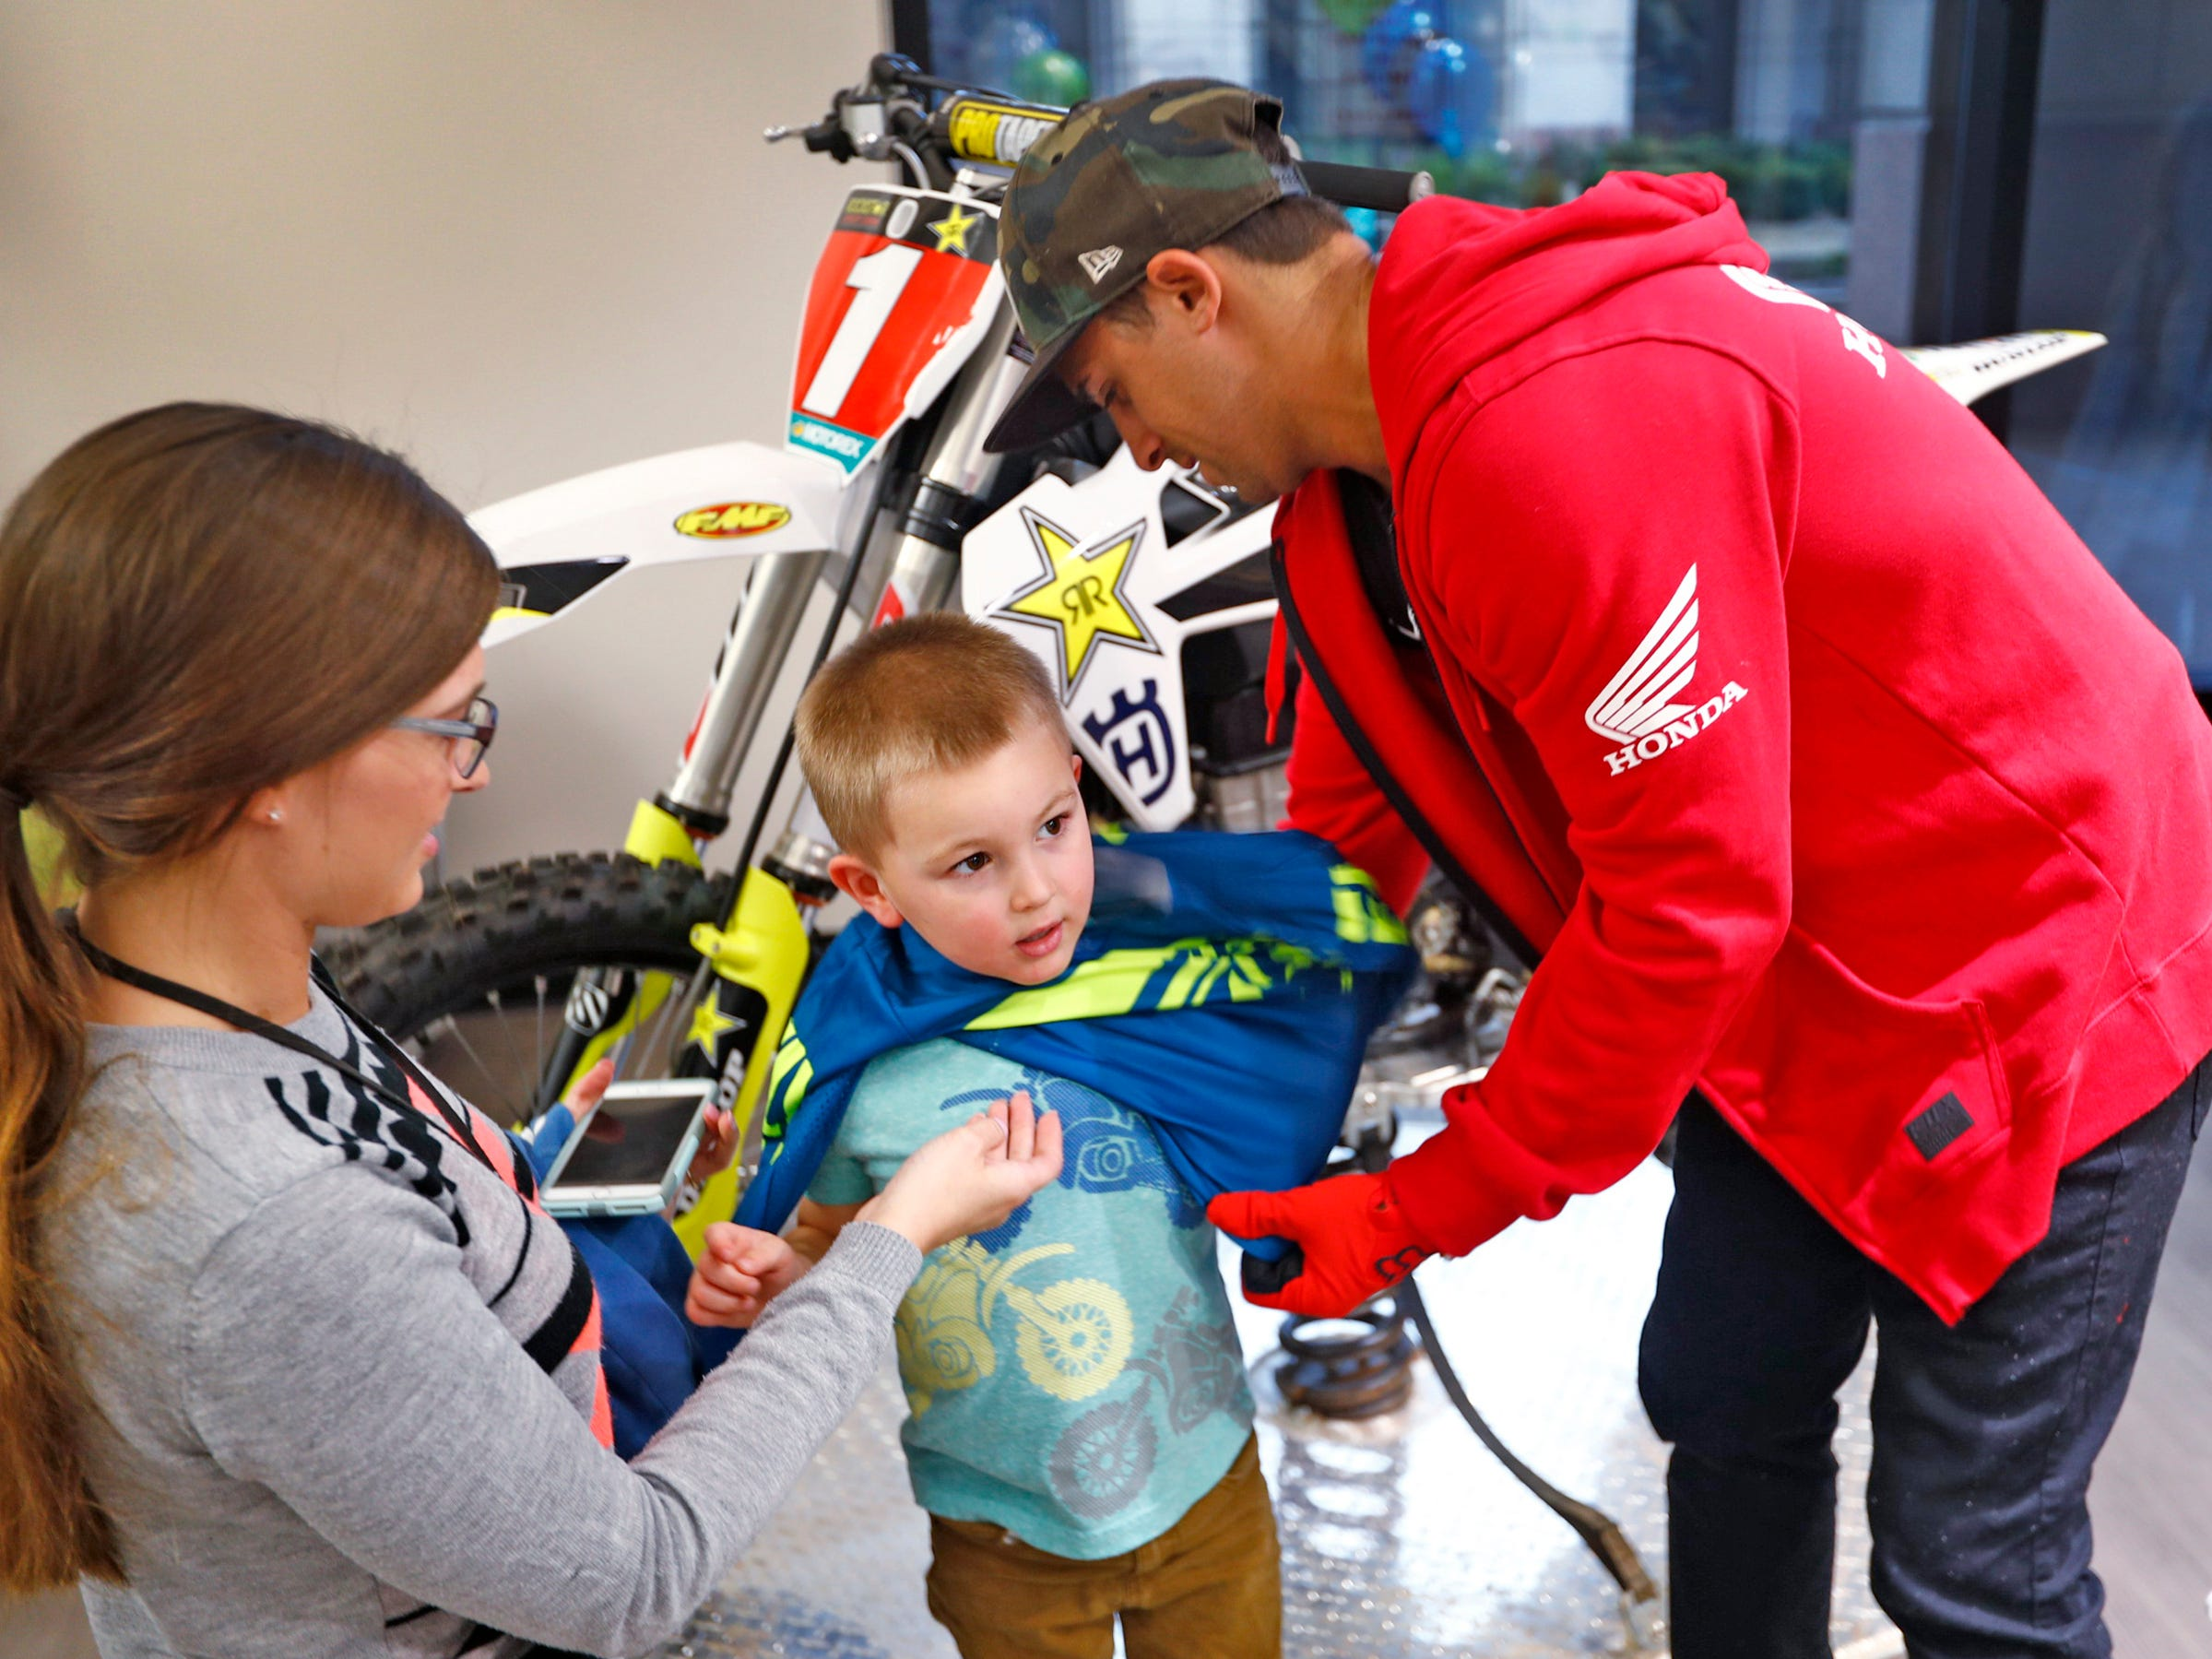 Savanna Hickle, left, helps Supercross racer Mike Alessi, right, put a jersey on her son Jaxson Bare as Alessi visits with kids at Day Early Learning Center, Thursday, March 14, 2019.  Alessi provided Supercross rider jerseys and hats for the kids and gave wagon rides, on a break before the upcoming Supercross race.